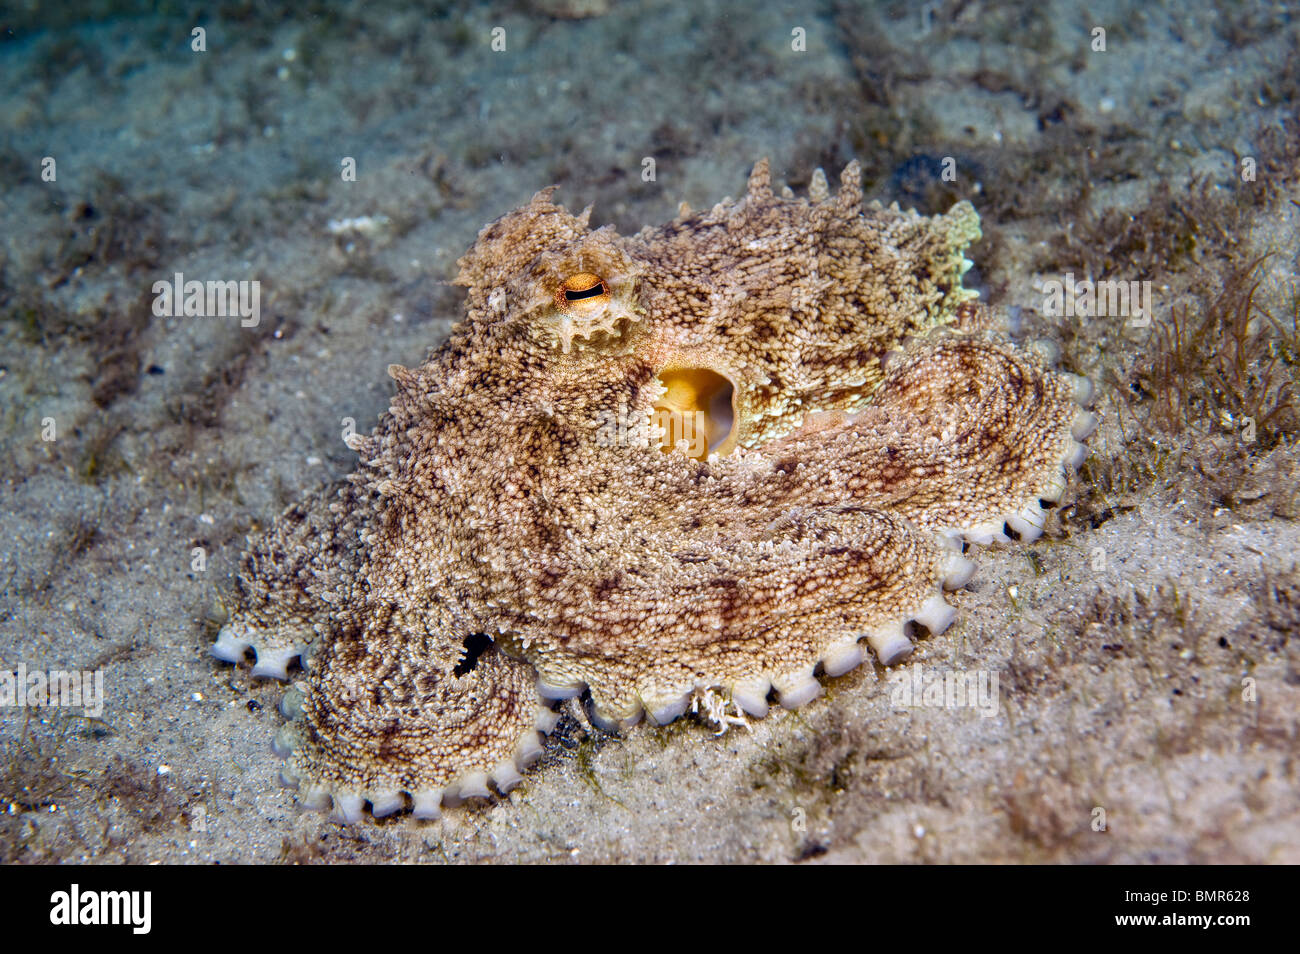 Reef Octopus (Octopus briareus) photographed in the Lake Worth Lagoon, an estuary near the Palm Beach Inlet, FL - Stock Image